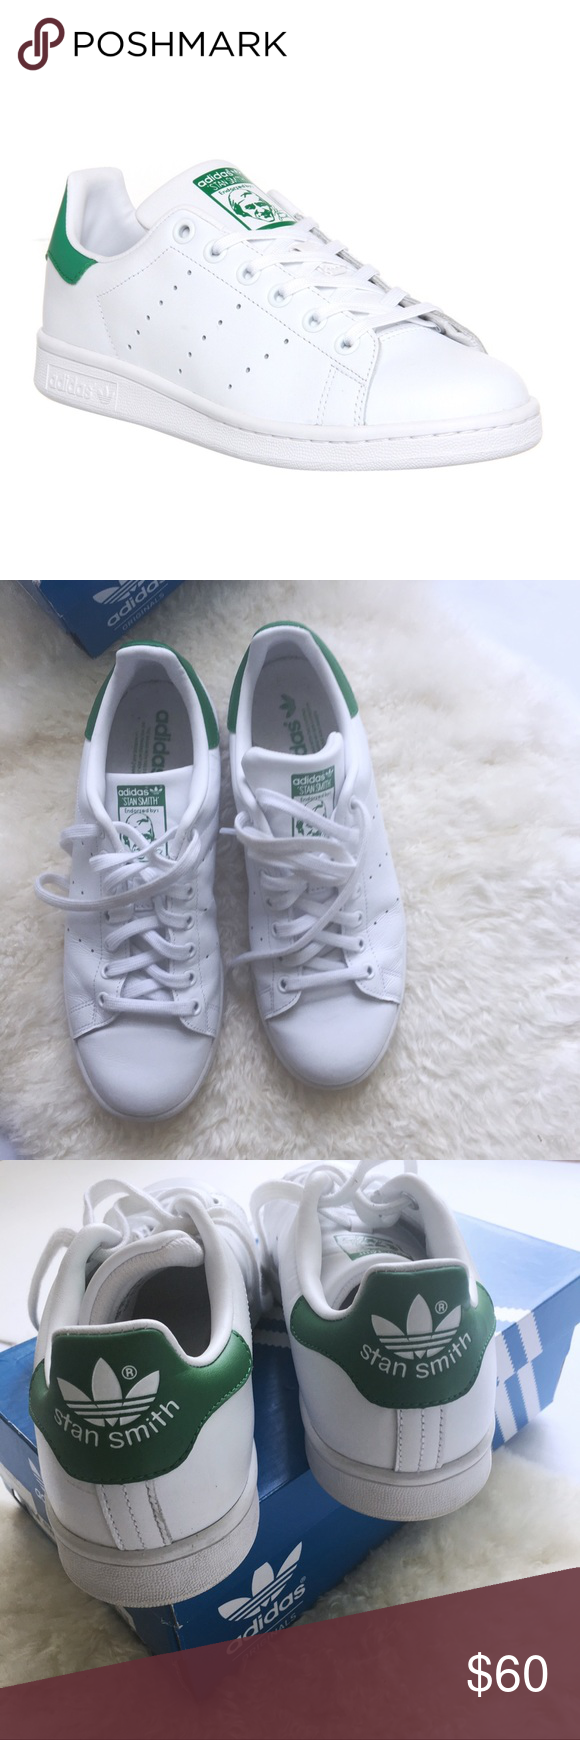 Adidas Stan Smith Verde y blanco Classics Pinterest Stan Smith